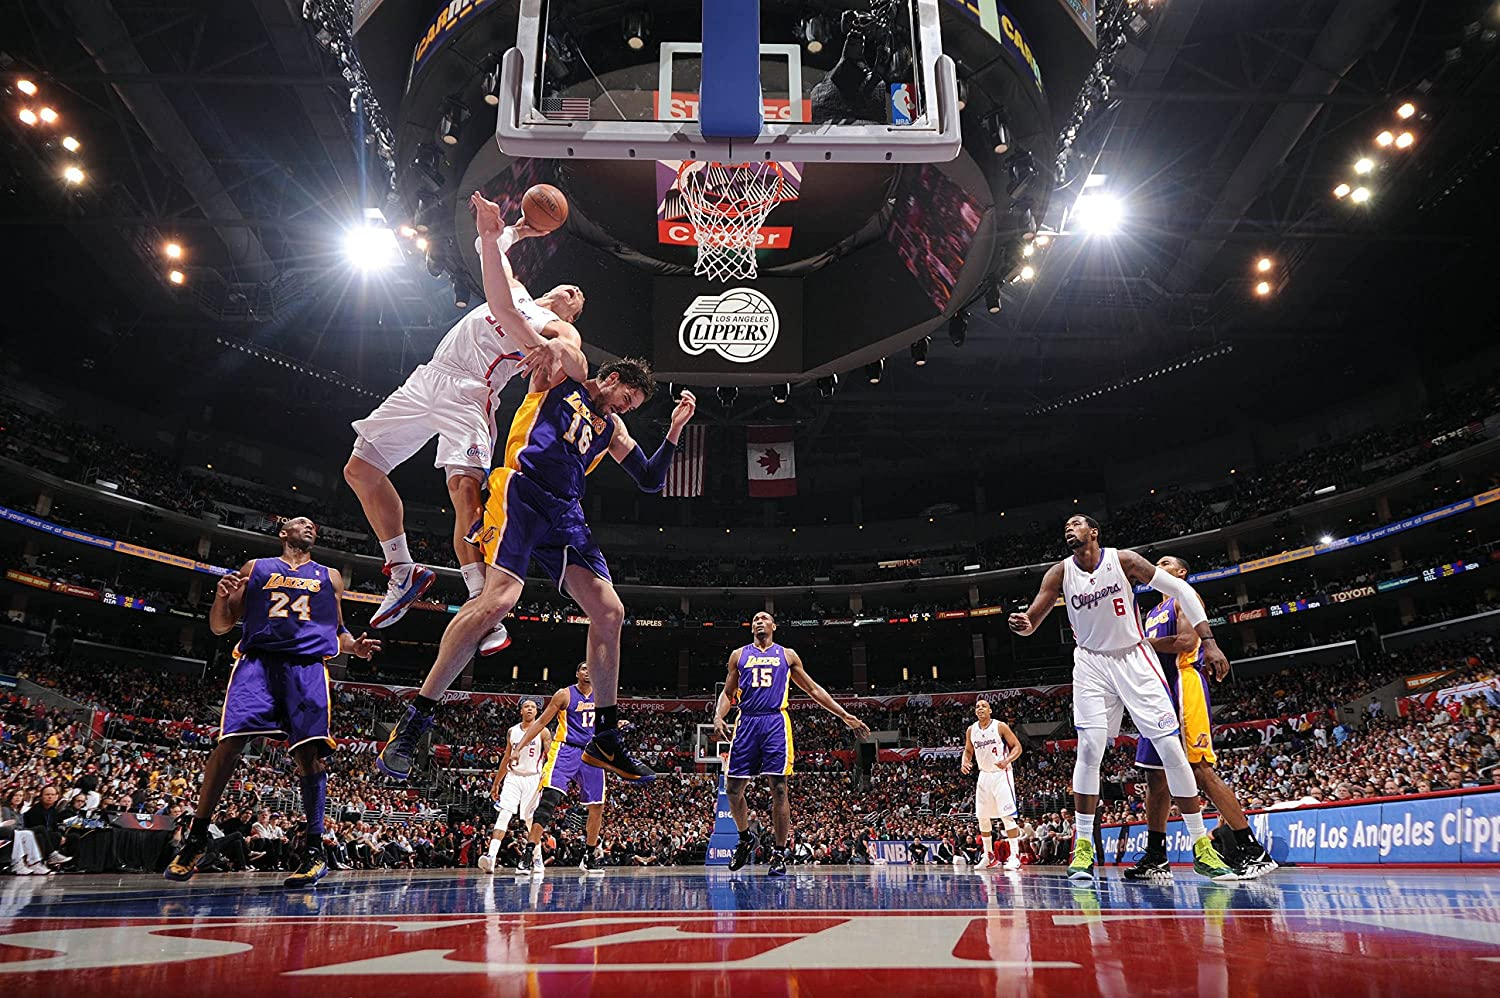 24 by 36 inch NBA Basketball Photo Poster LA CLIPPERS Poster 2